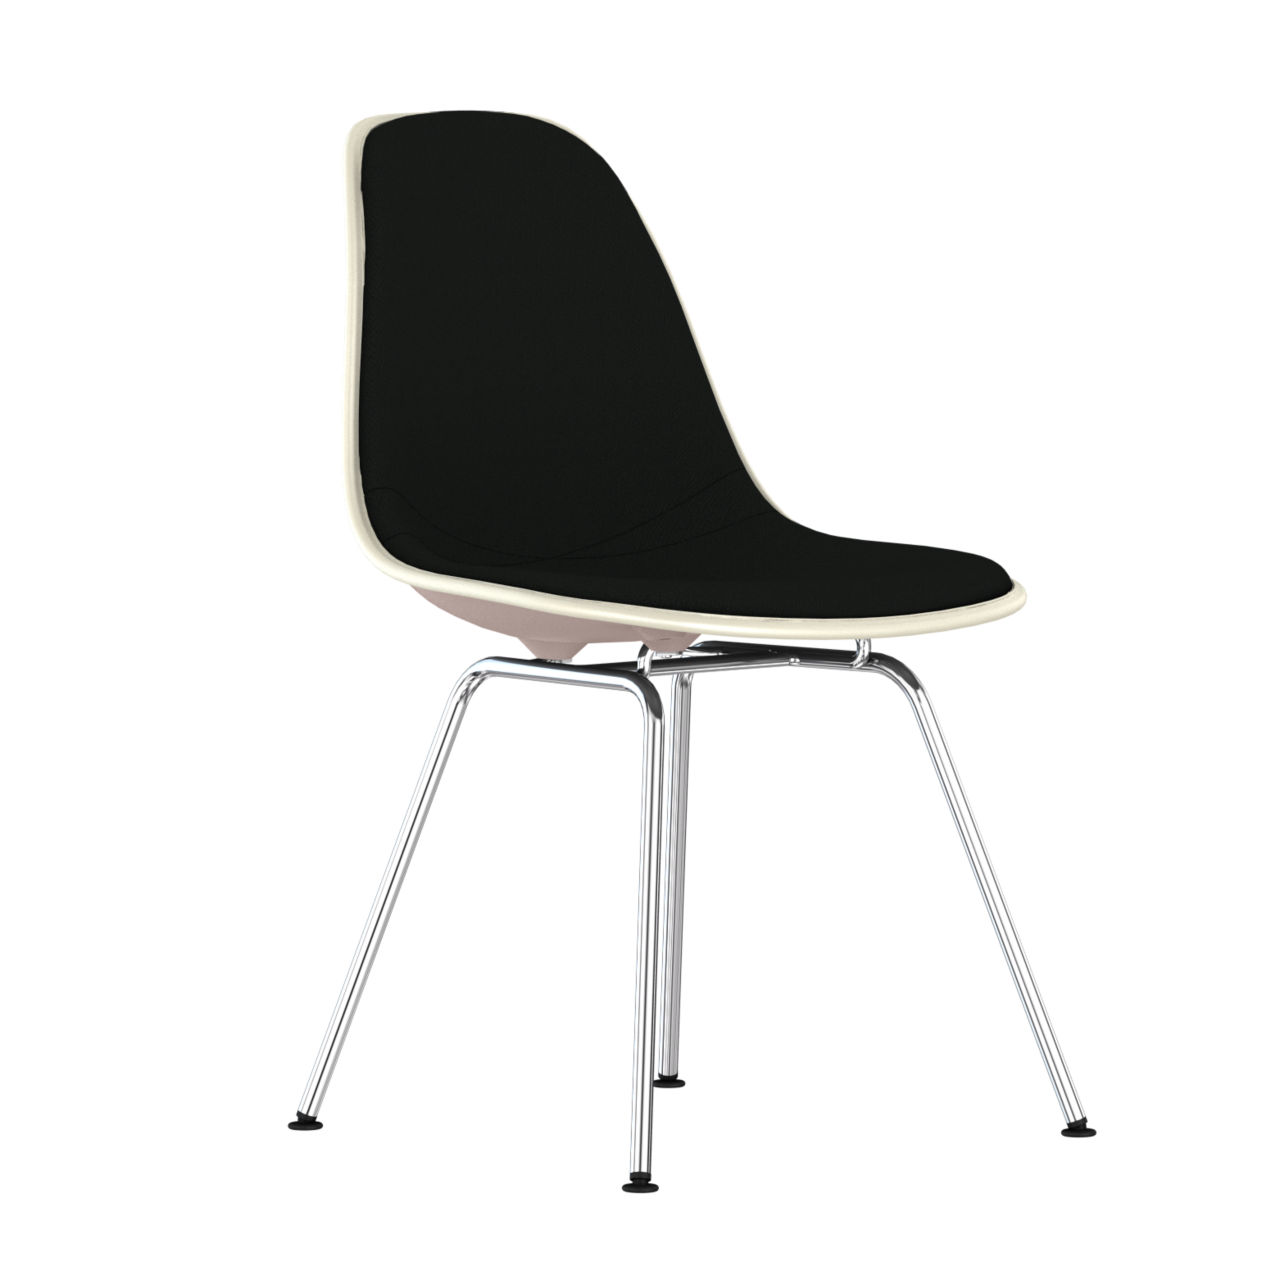 Eames Upholstered Molded Plastic Side Chair with 4 Leg Base in Stone by Herman Miller